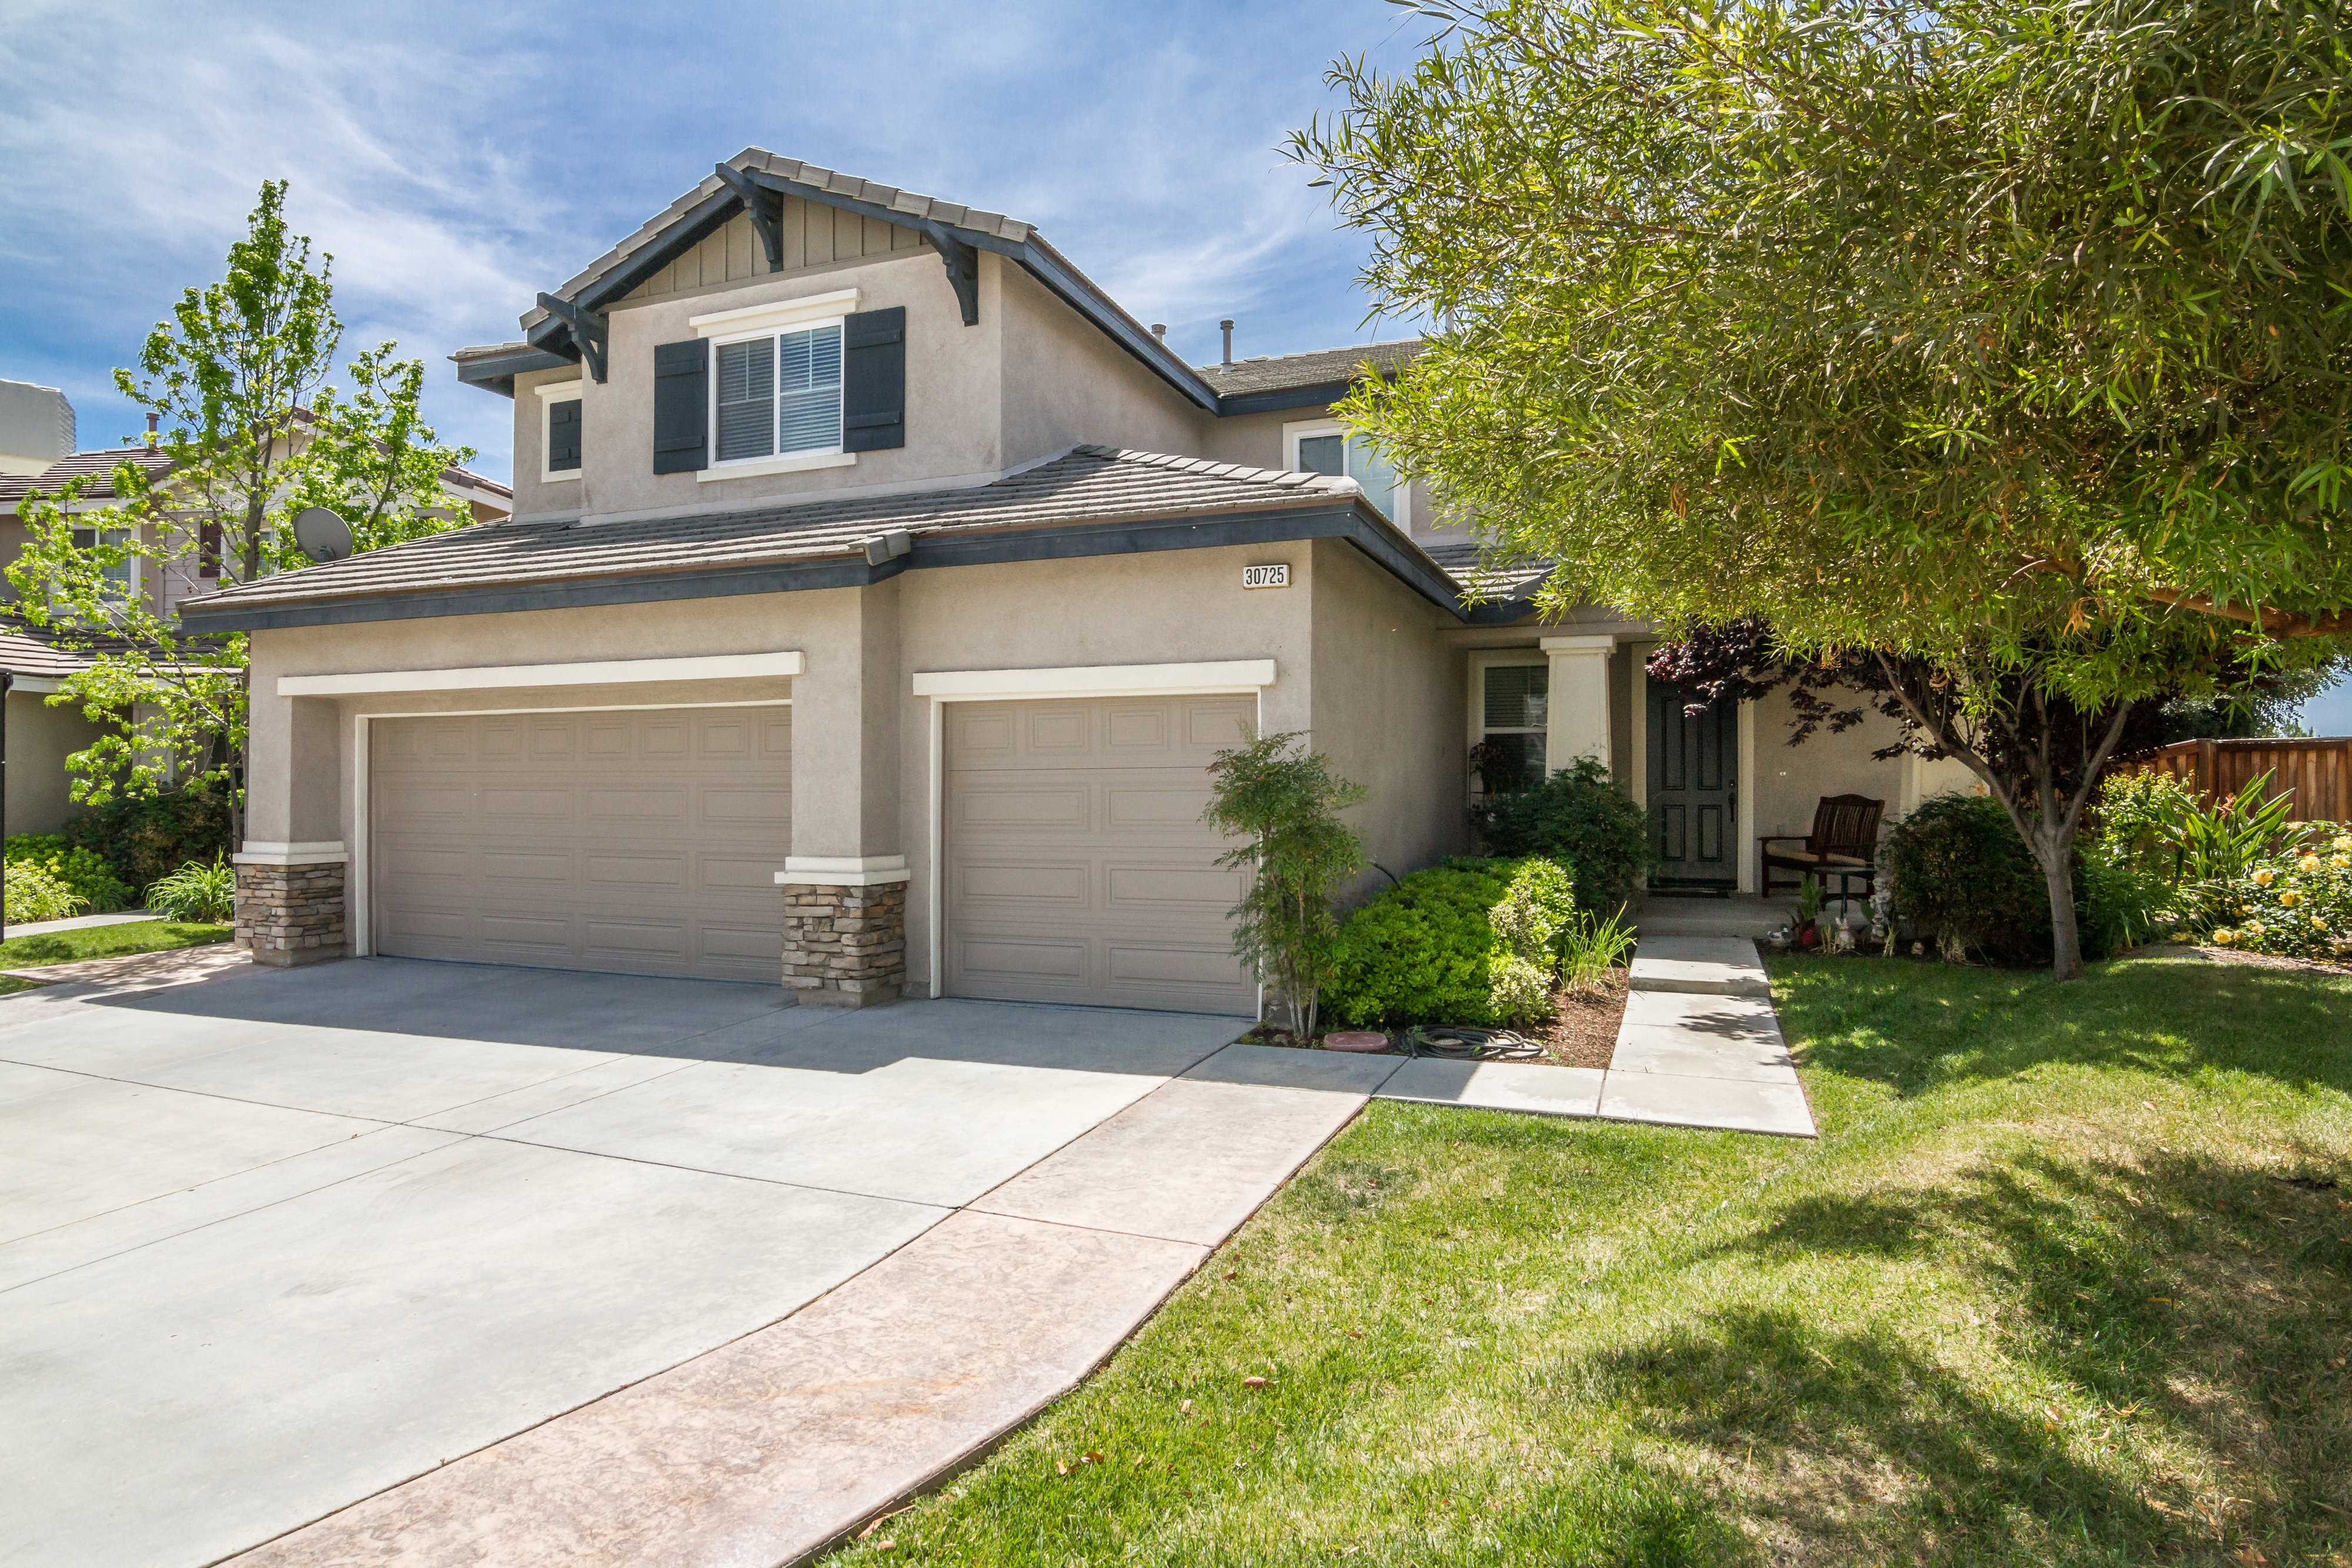 Hillcrest dr temecula mitchell home sales for Mitchell homes price list